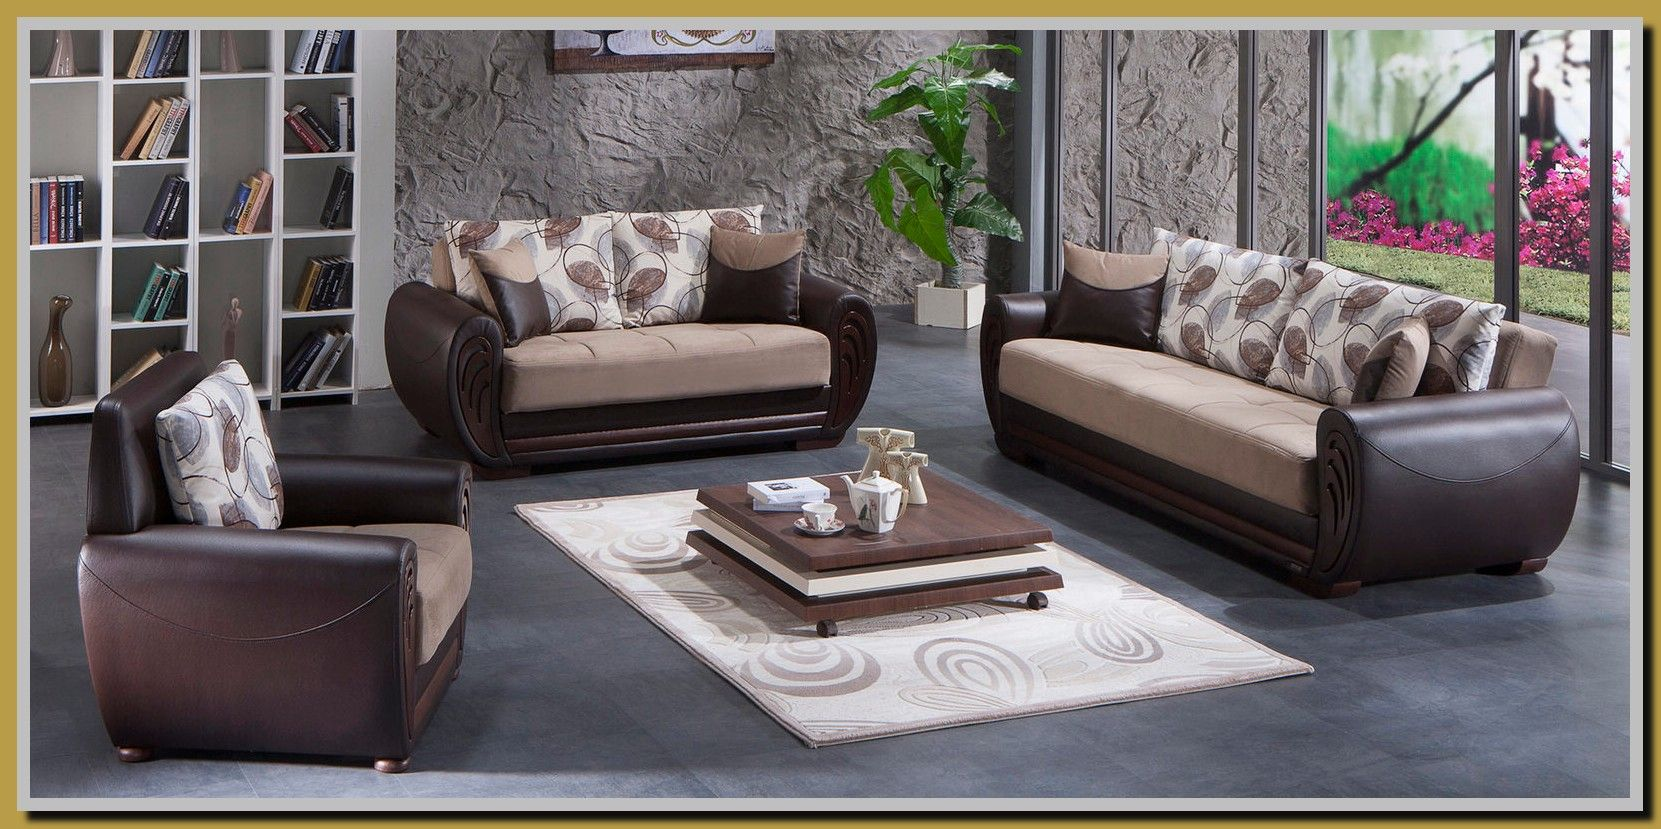 45 Reference Of Sofa Cover Design In Nepal In 2020 Sofa